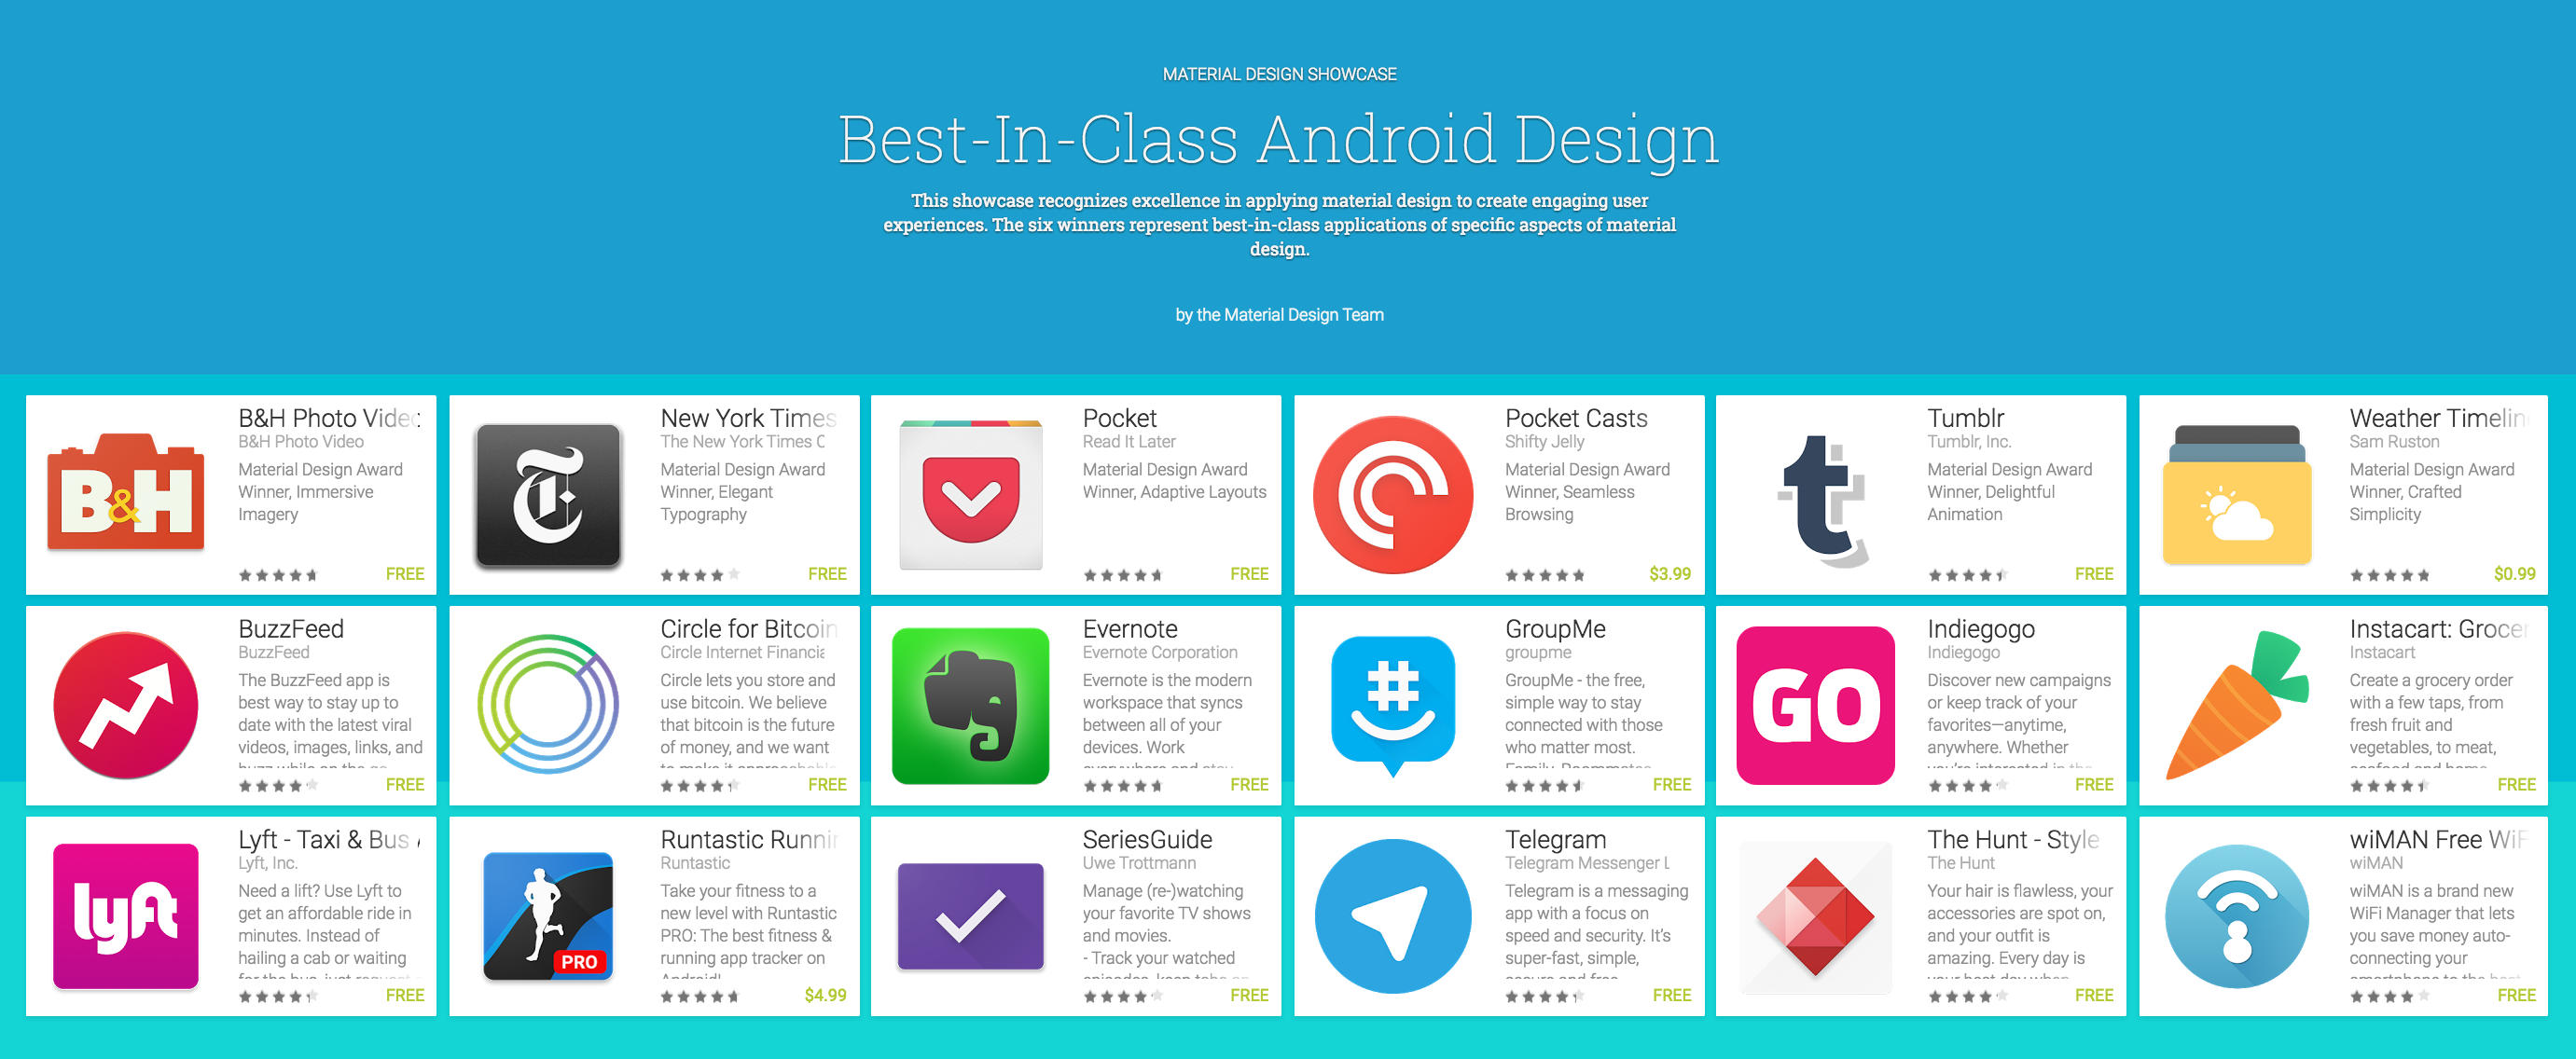 Best material design apps on google play